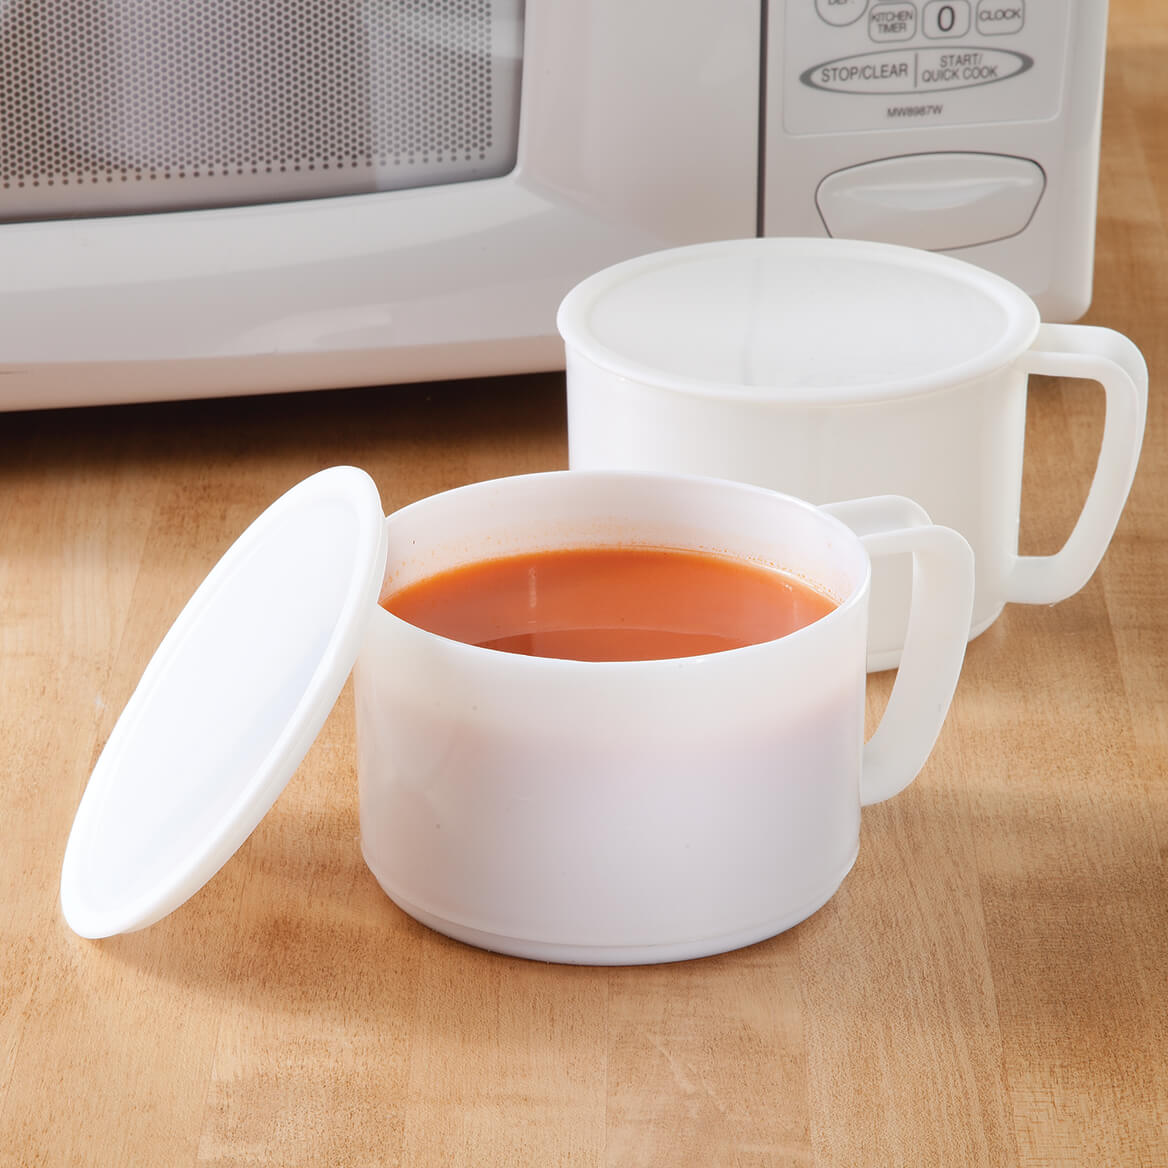 Microwavable Bowls With Lids